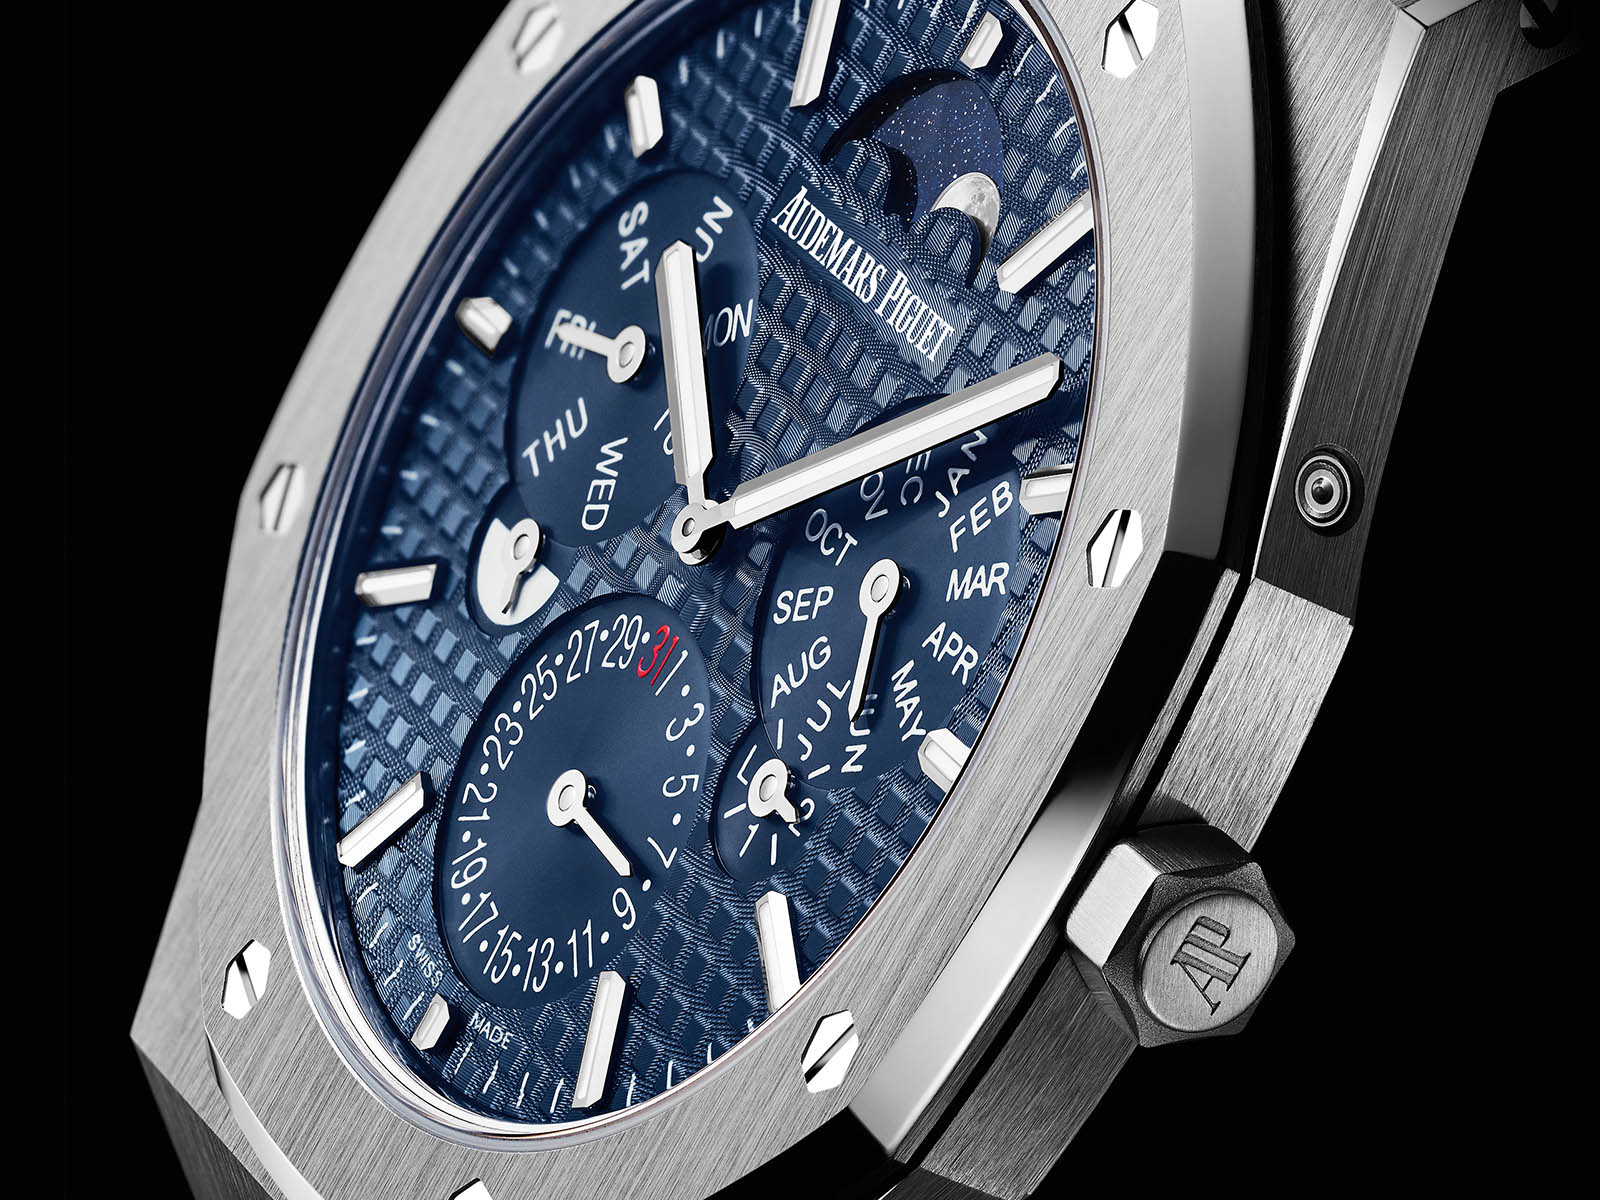 audemars-piguet-royal-oak-rd-2-perpetual-chronograph-ultra-thin-3.jpg